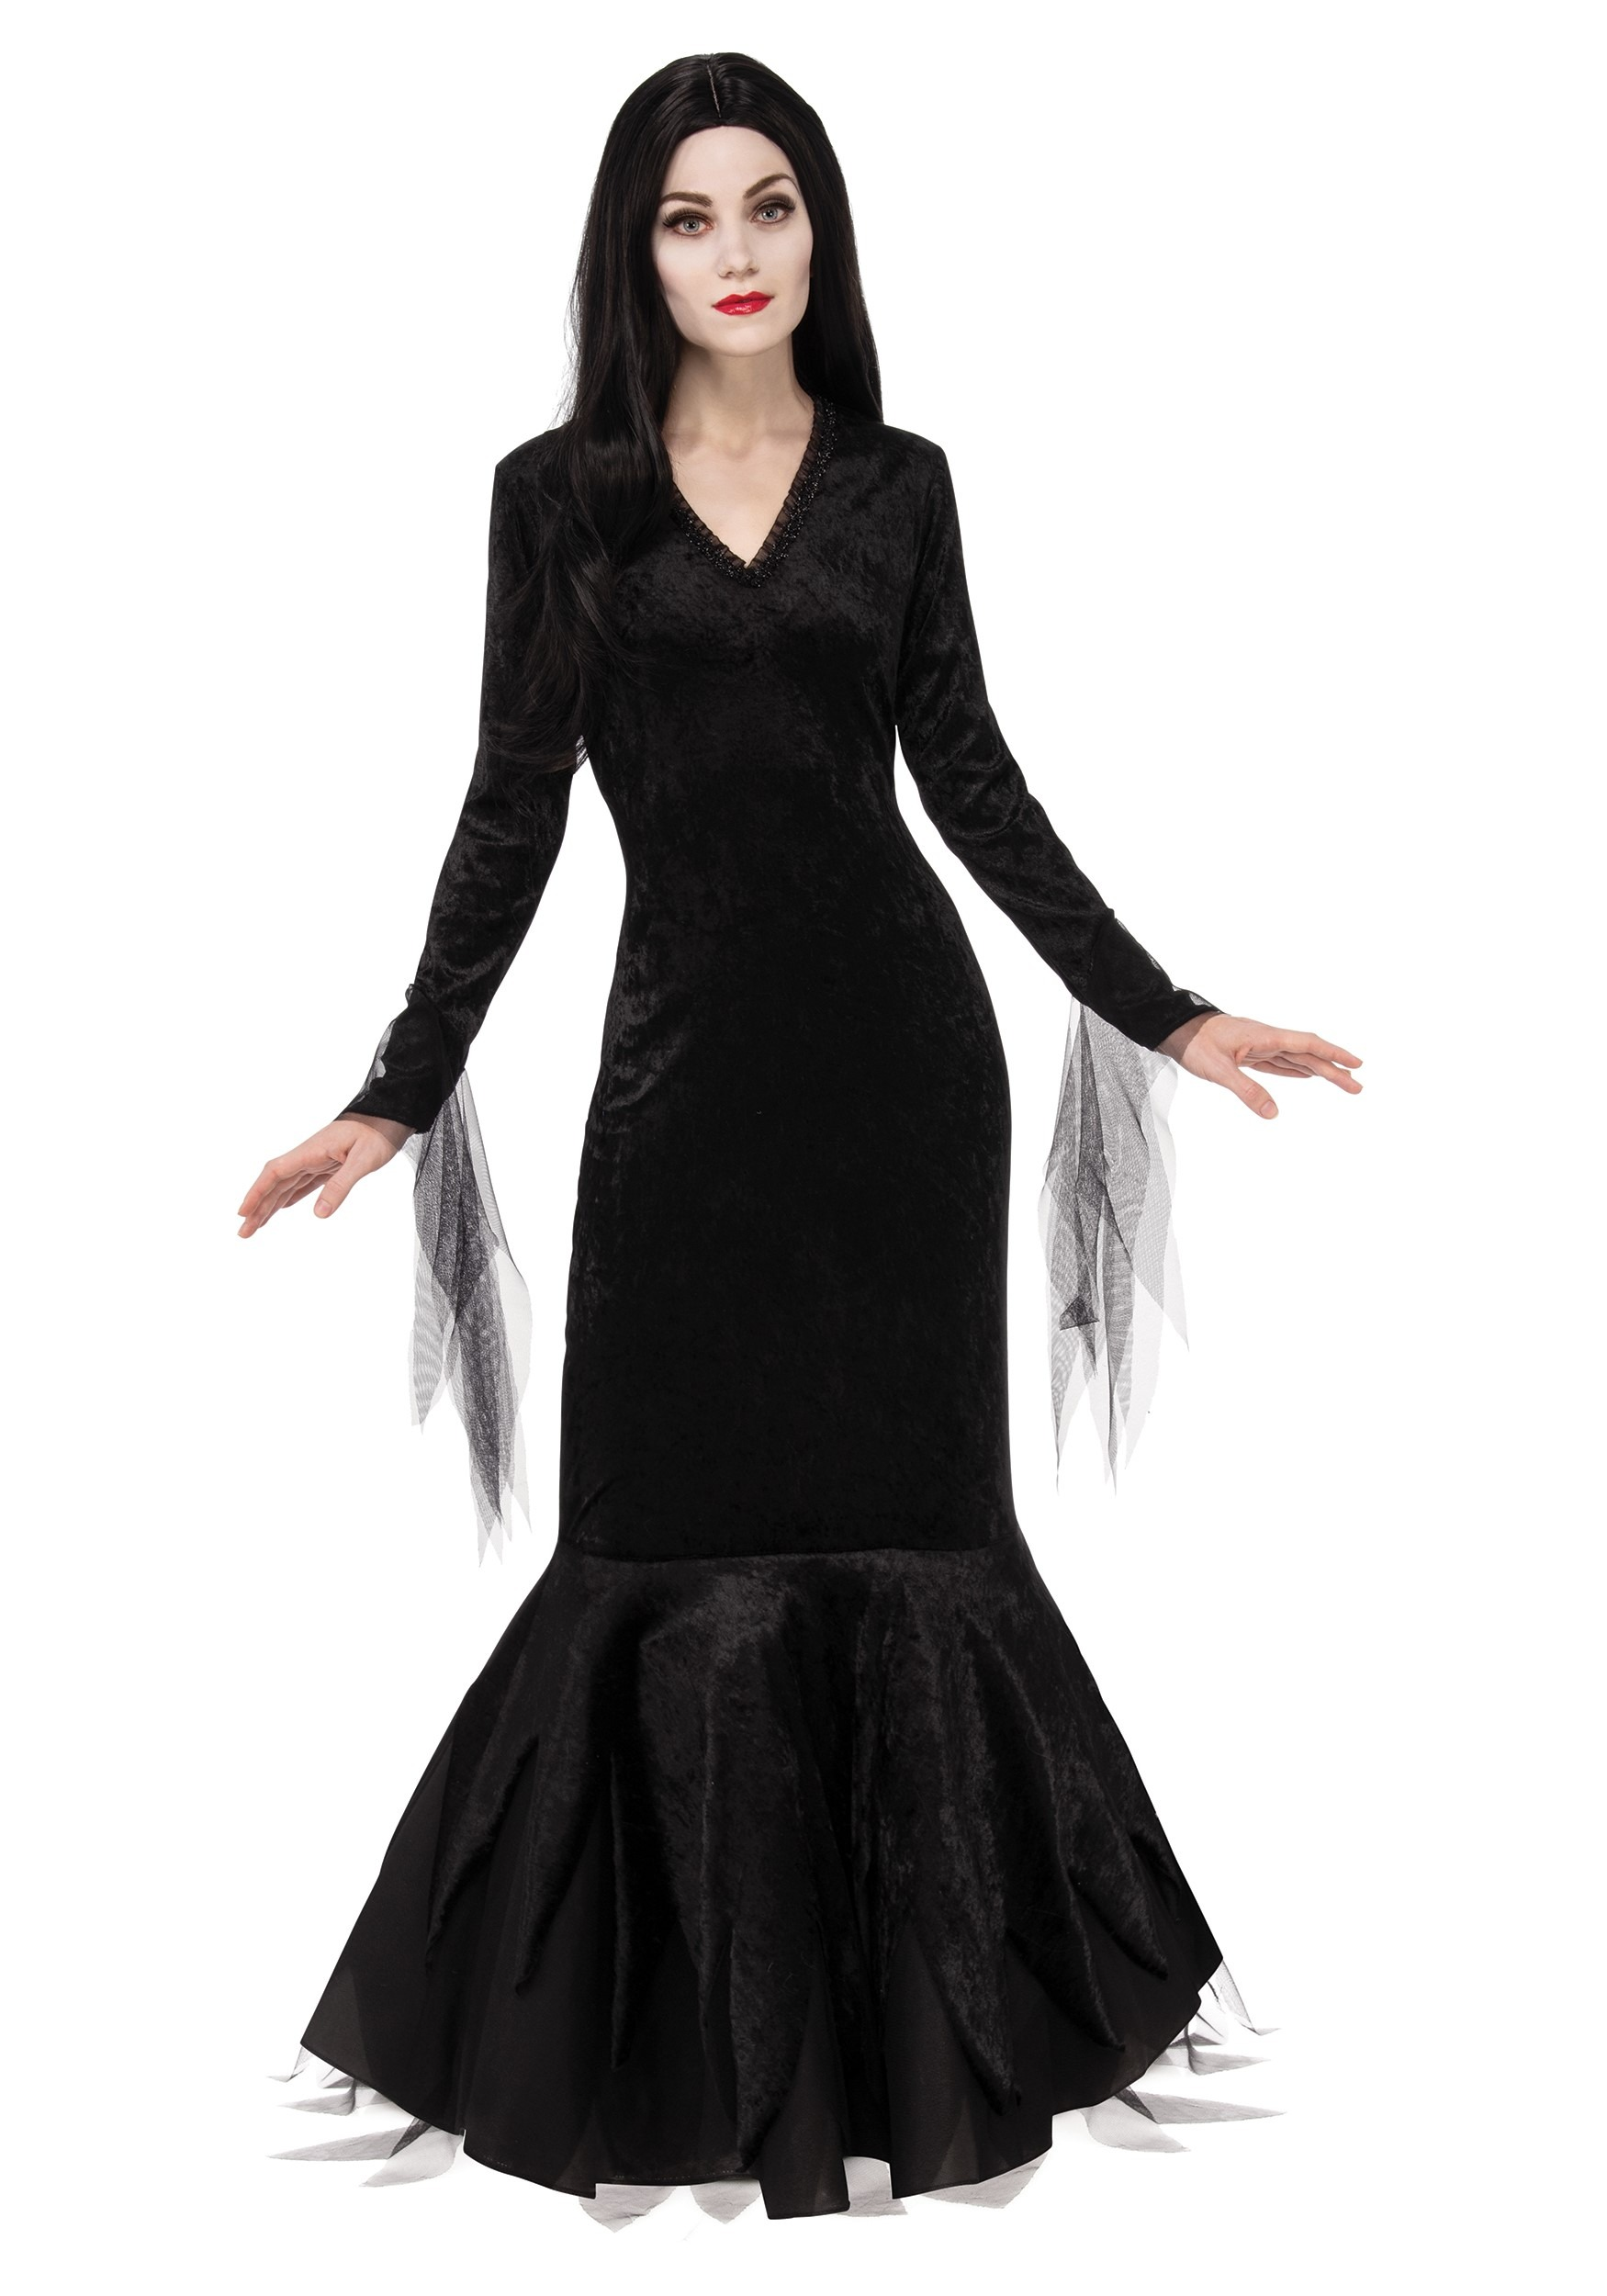 Women's Addams Family Morticia Costume